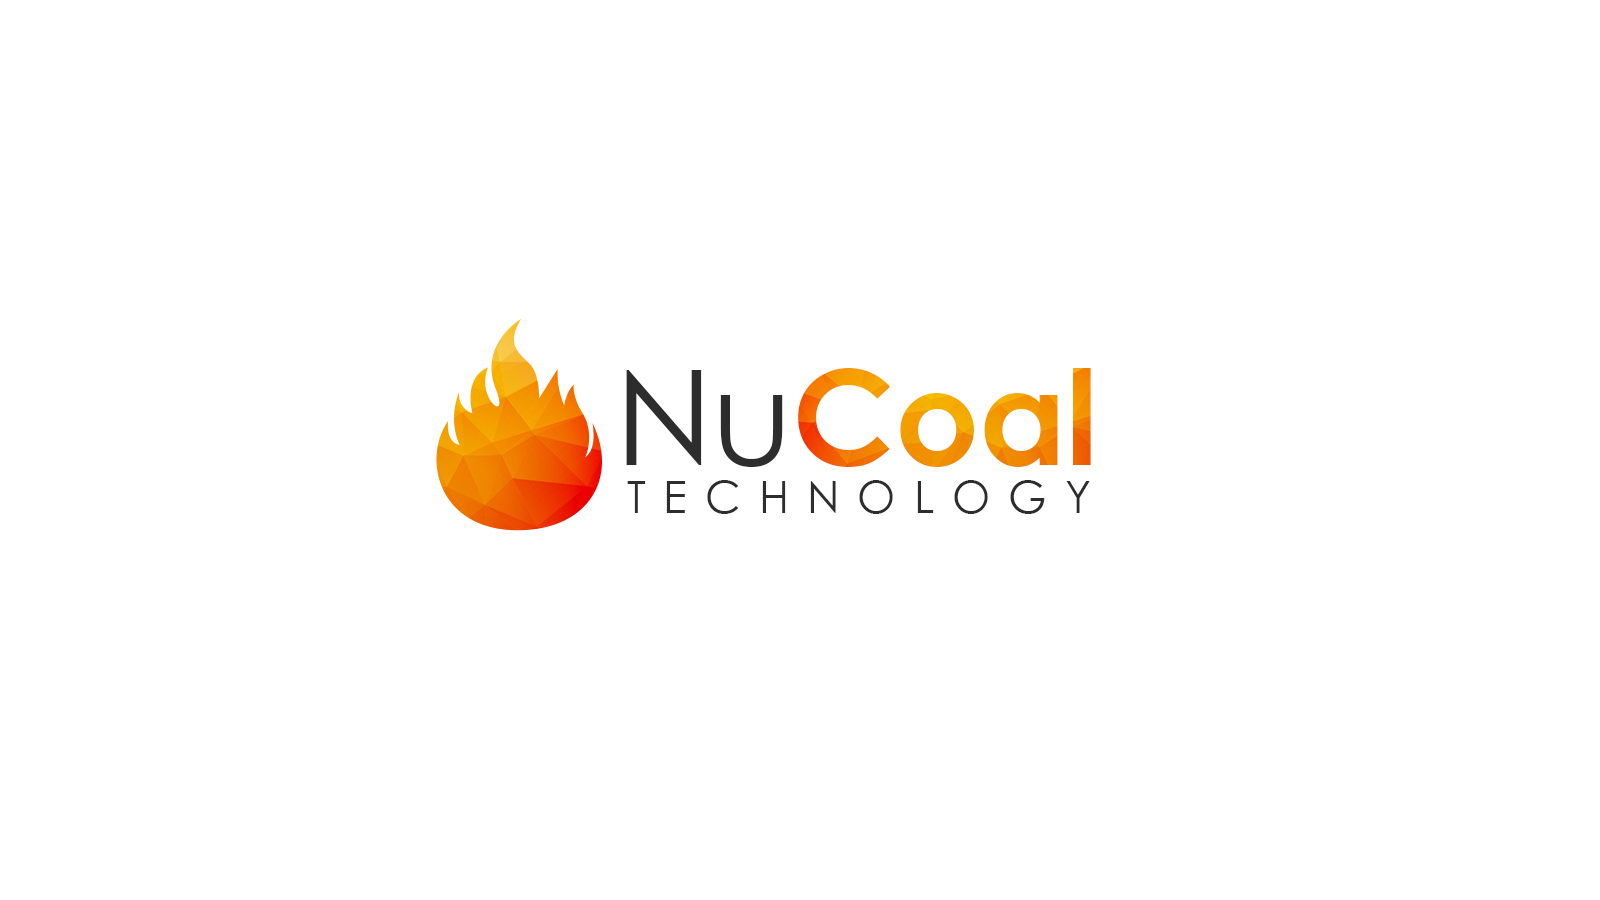 NuCoal technology